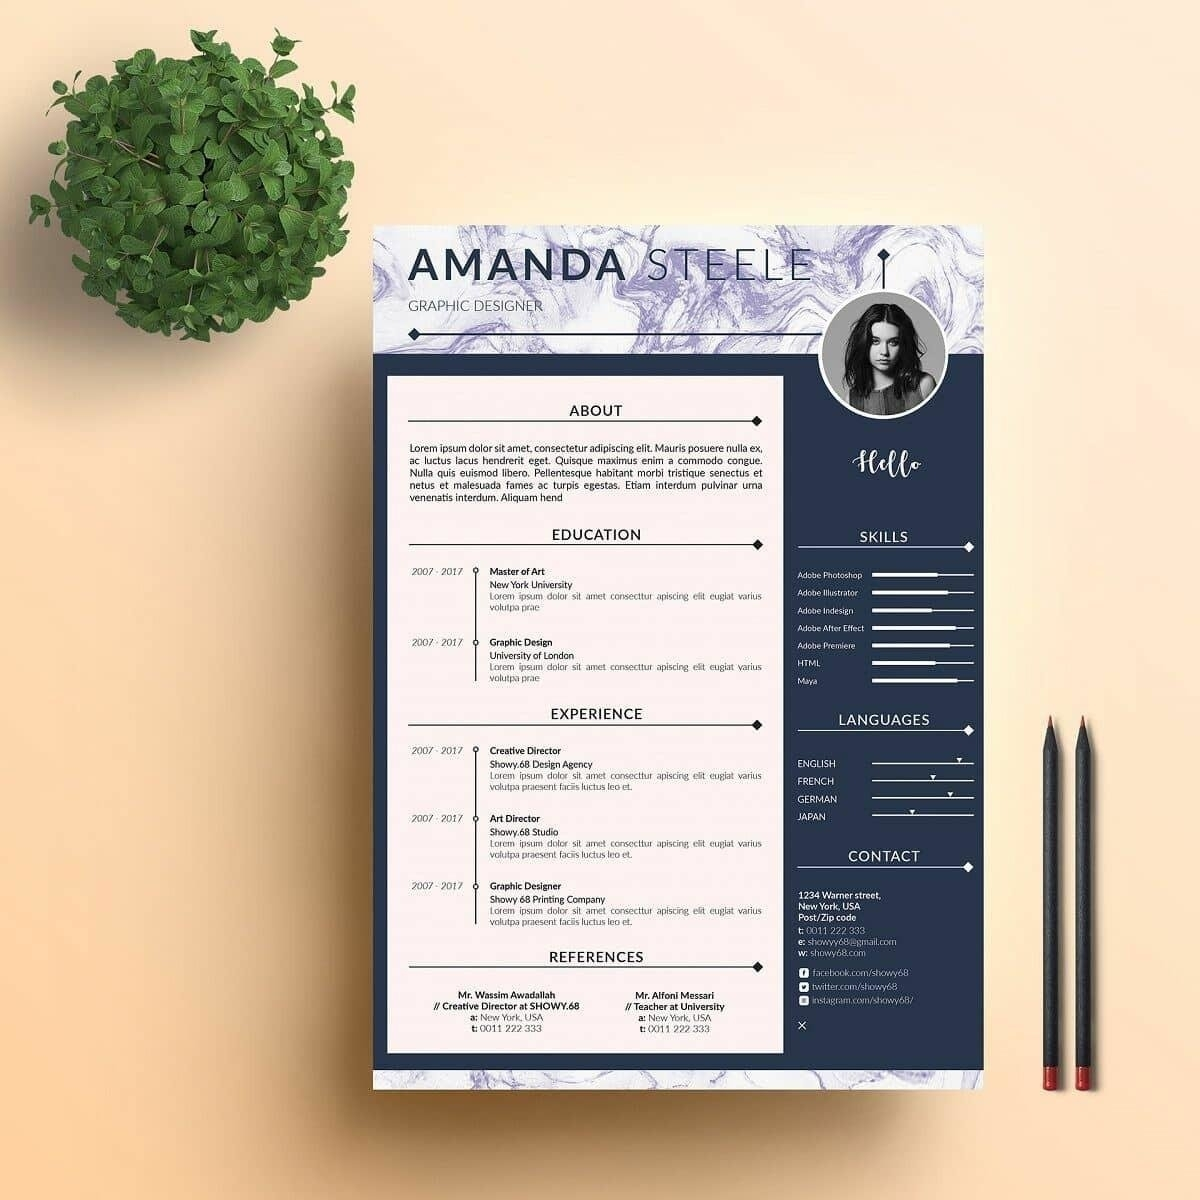 18+ Modern Resume Templates & Examples [With Format Tips]